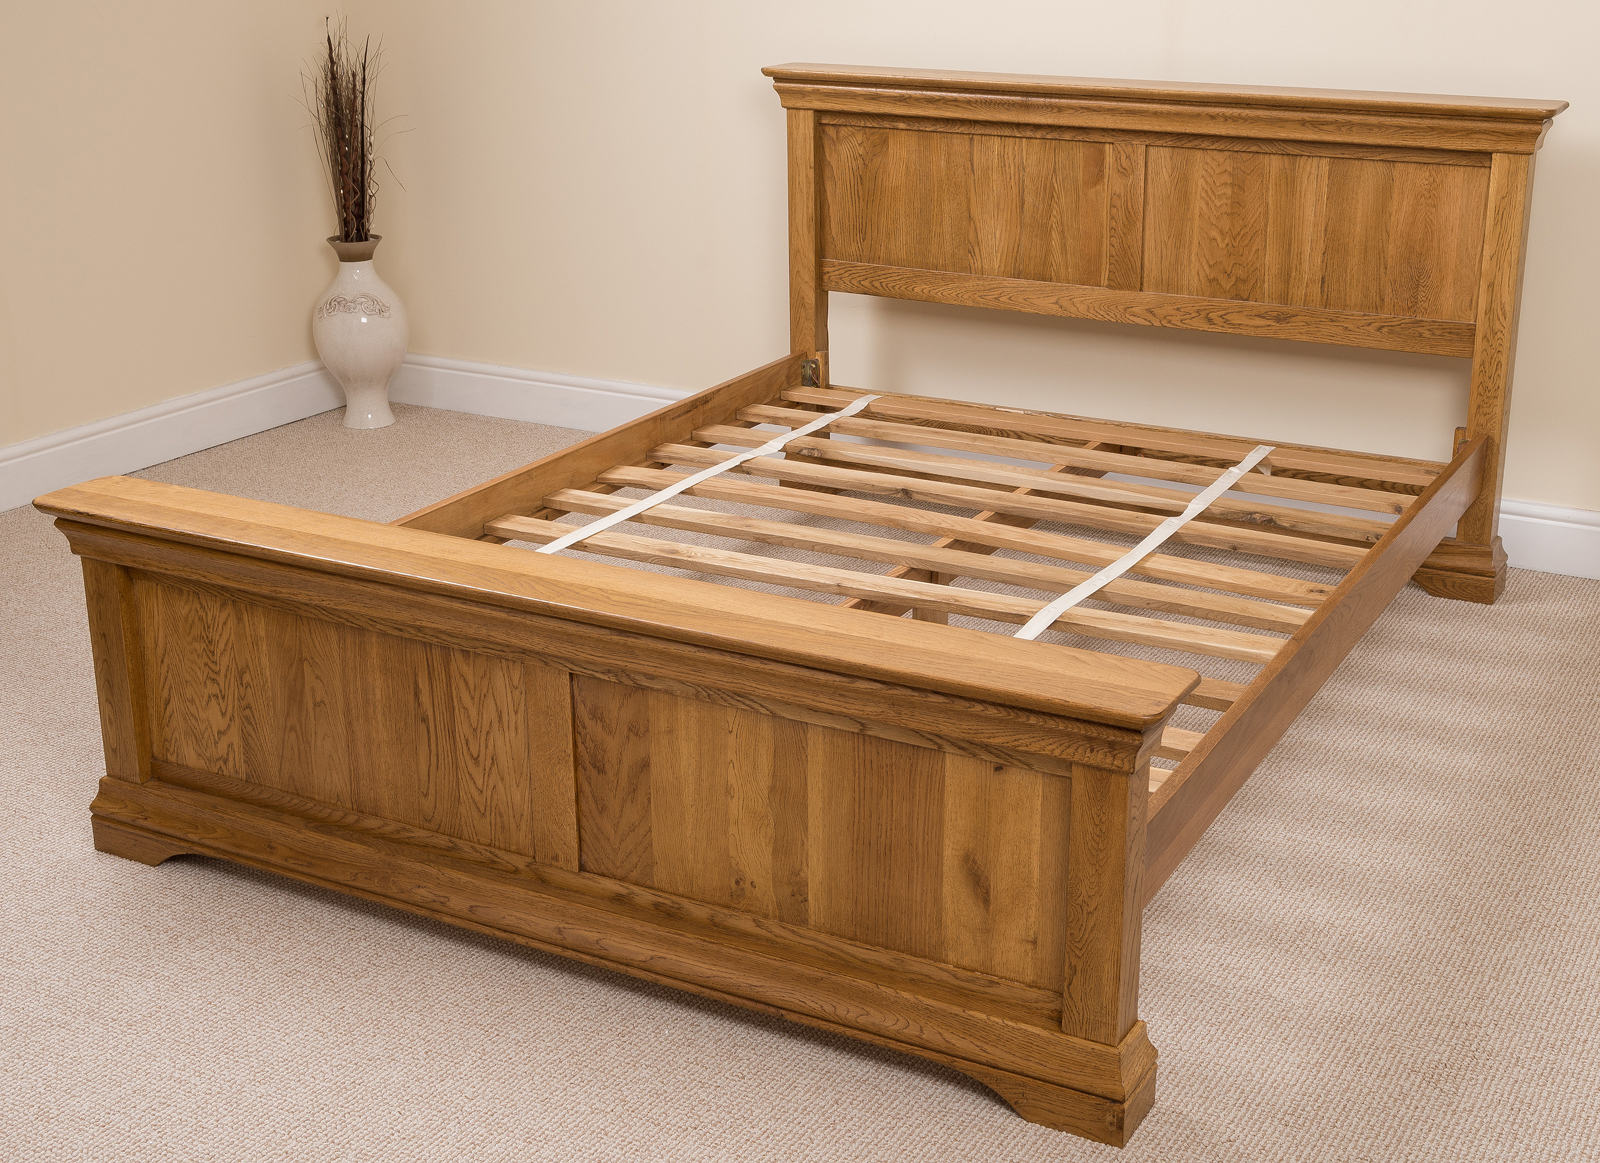 King size wood bed frame 28 images king size exotic for Wood bed frames for king size beds